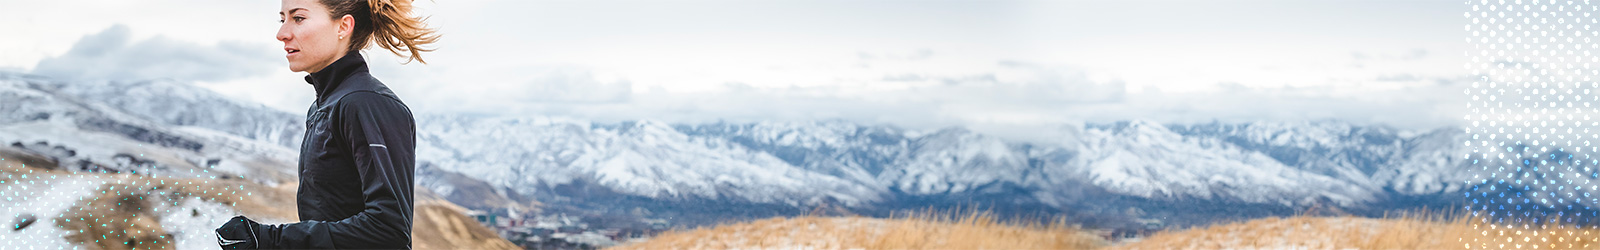 Woman running in the mountains in winter.